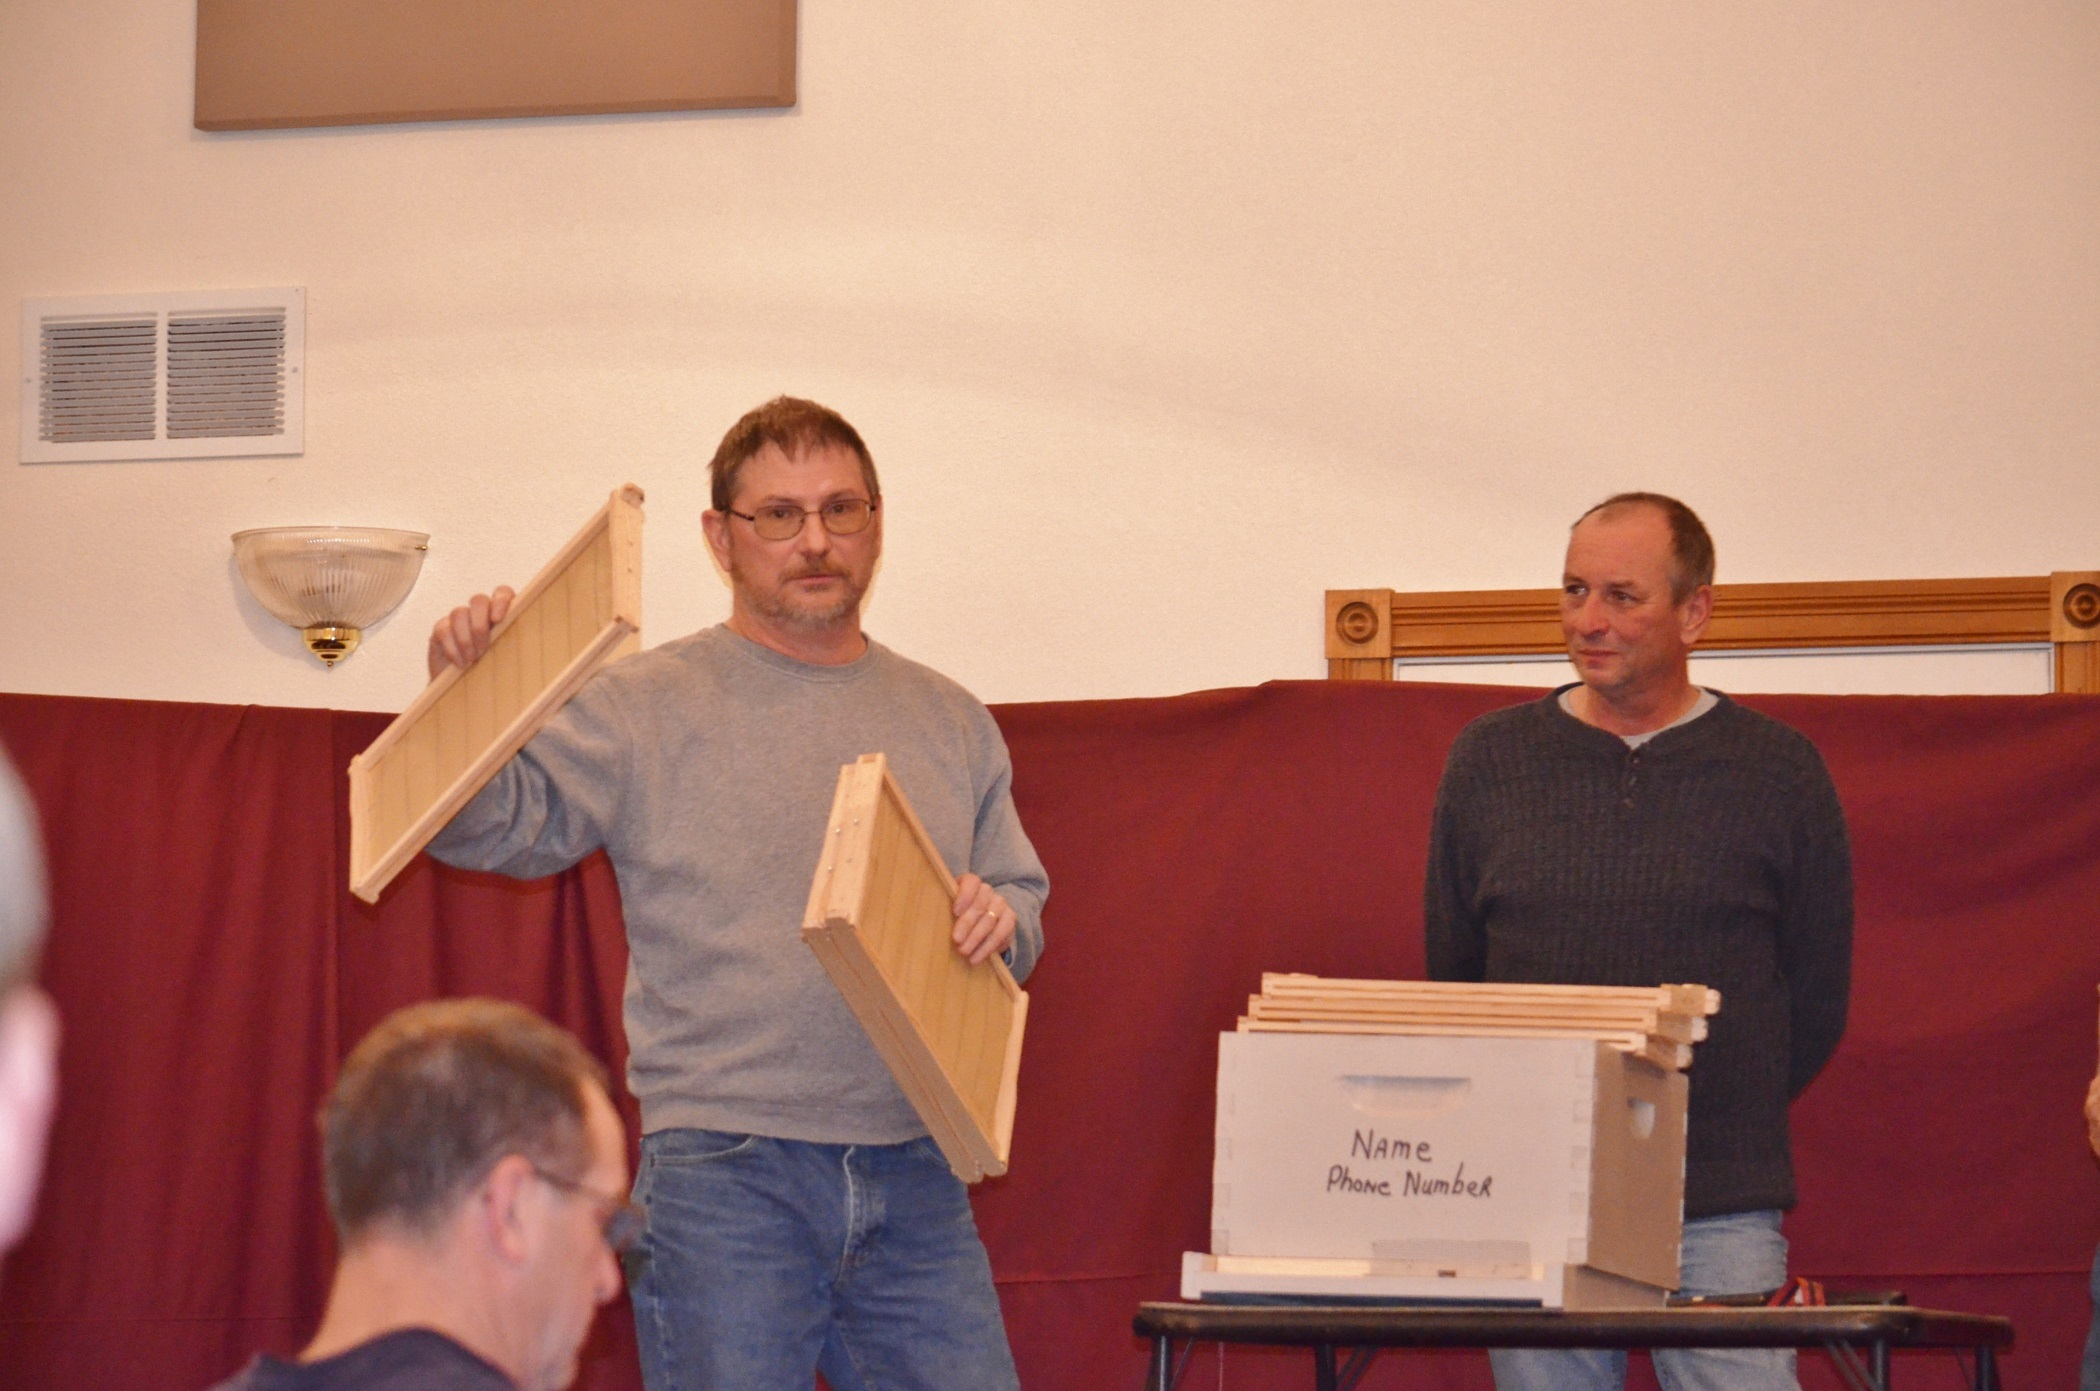 Barry Kniceley & Chuck Cienawski presenting how to prepare your nucs for bee pickup